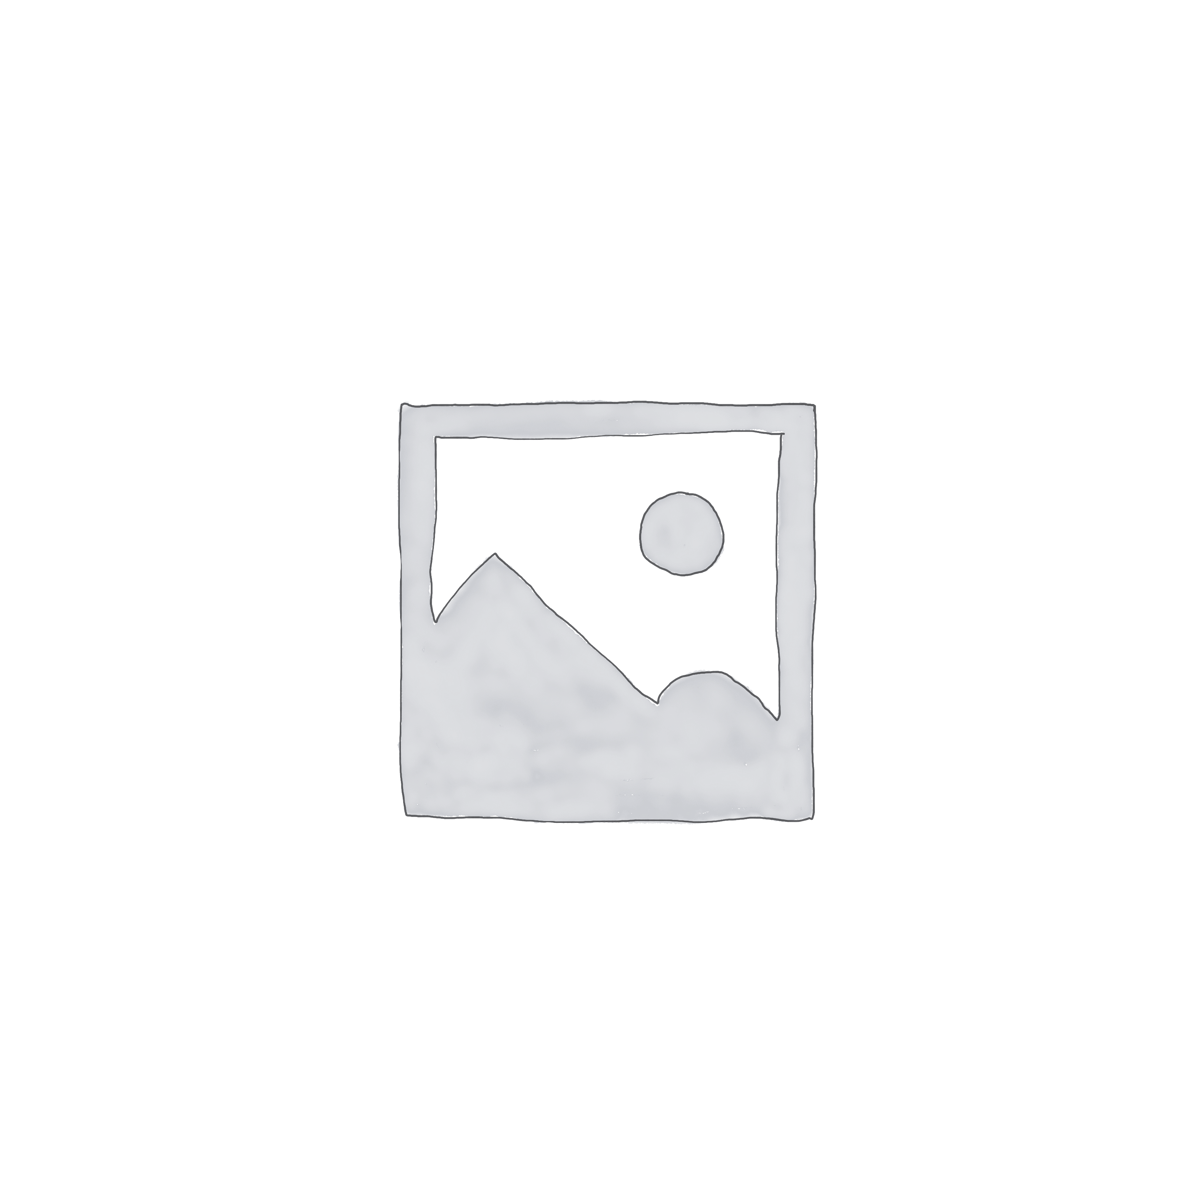 Chassis Exhaust Brake System